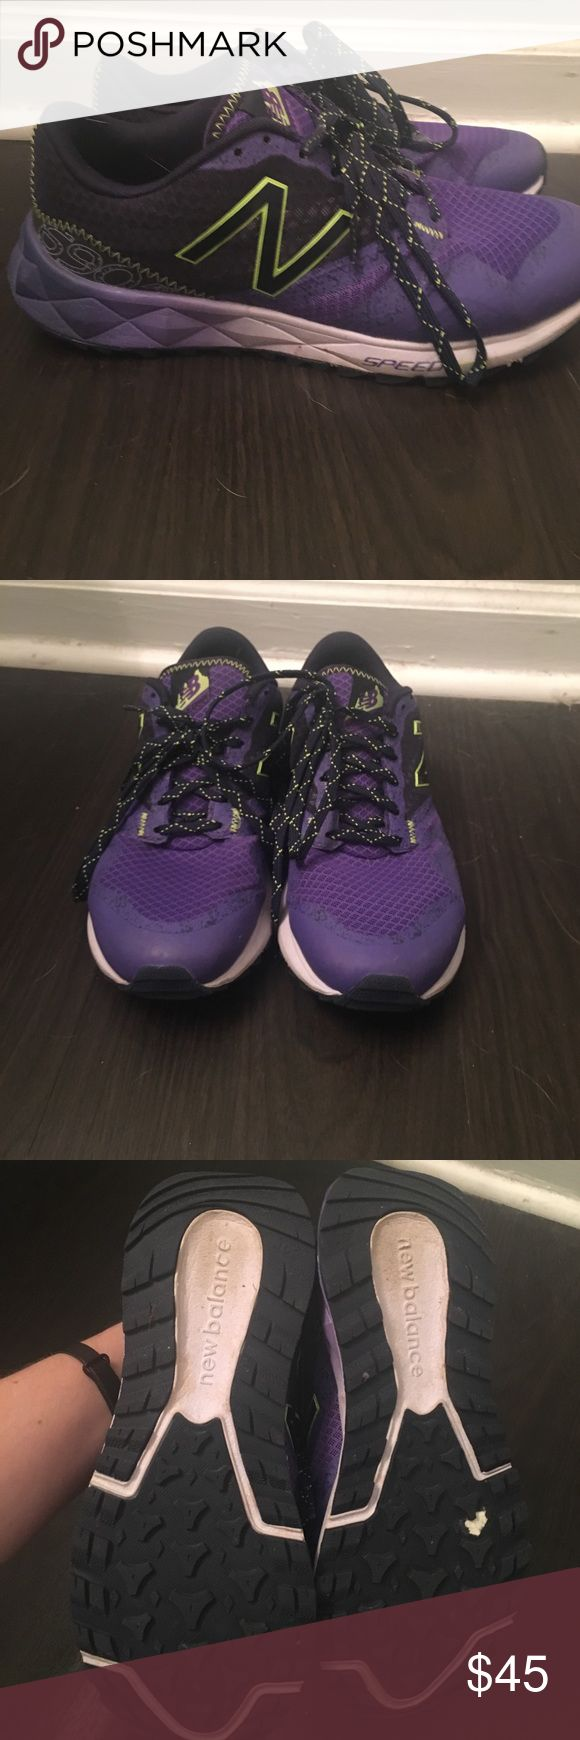 new Balance 690 GENTLY used New Balance 690 in purple and lime green New Balance Shoes Athletic Shoes